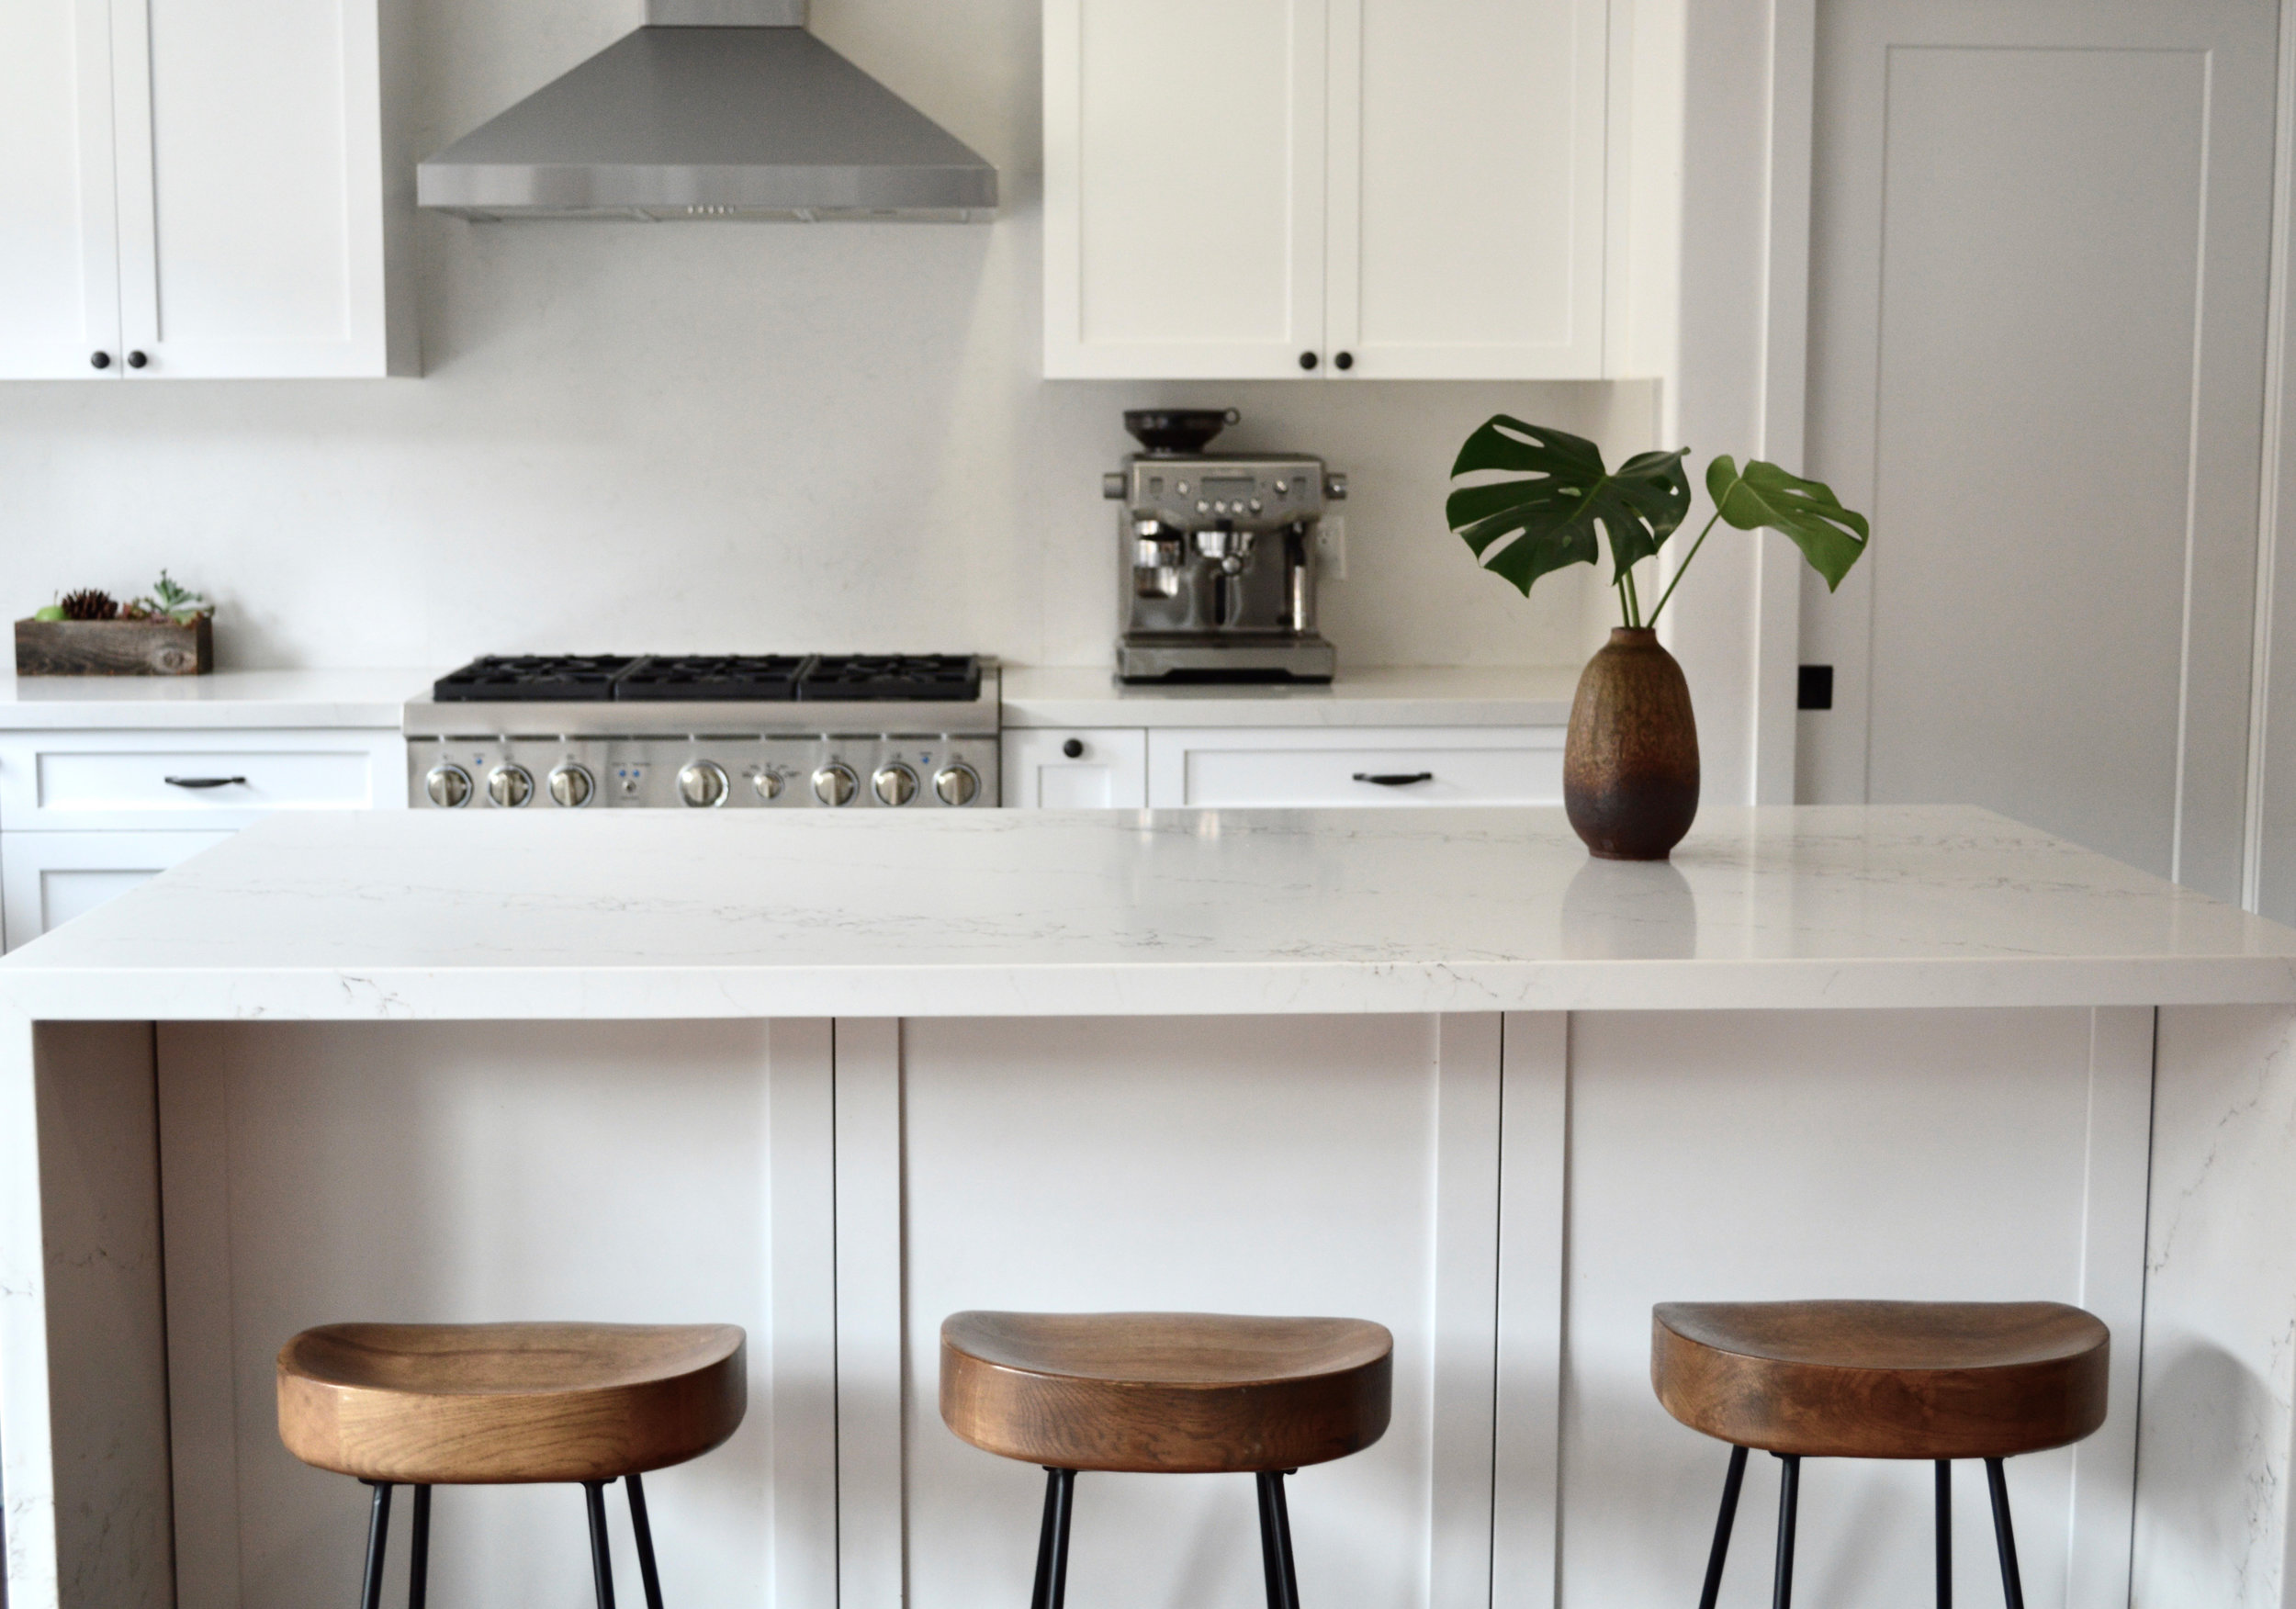 repeat-plus-world-kitchen-collaboration-03.jpg